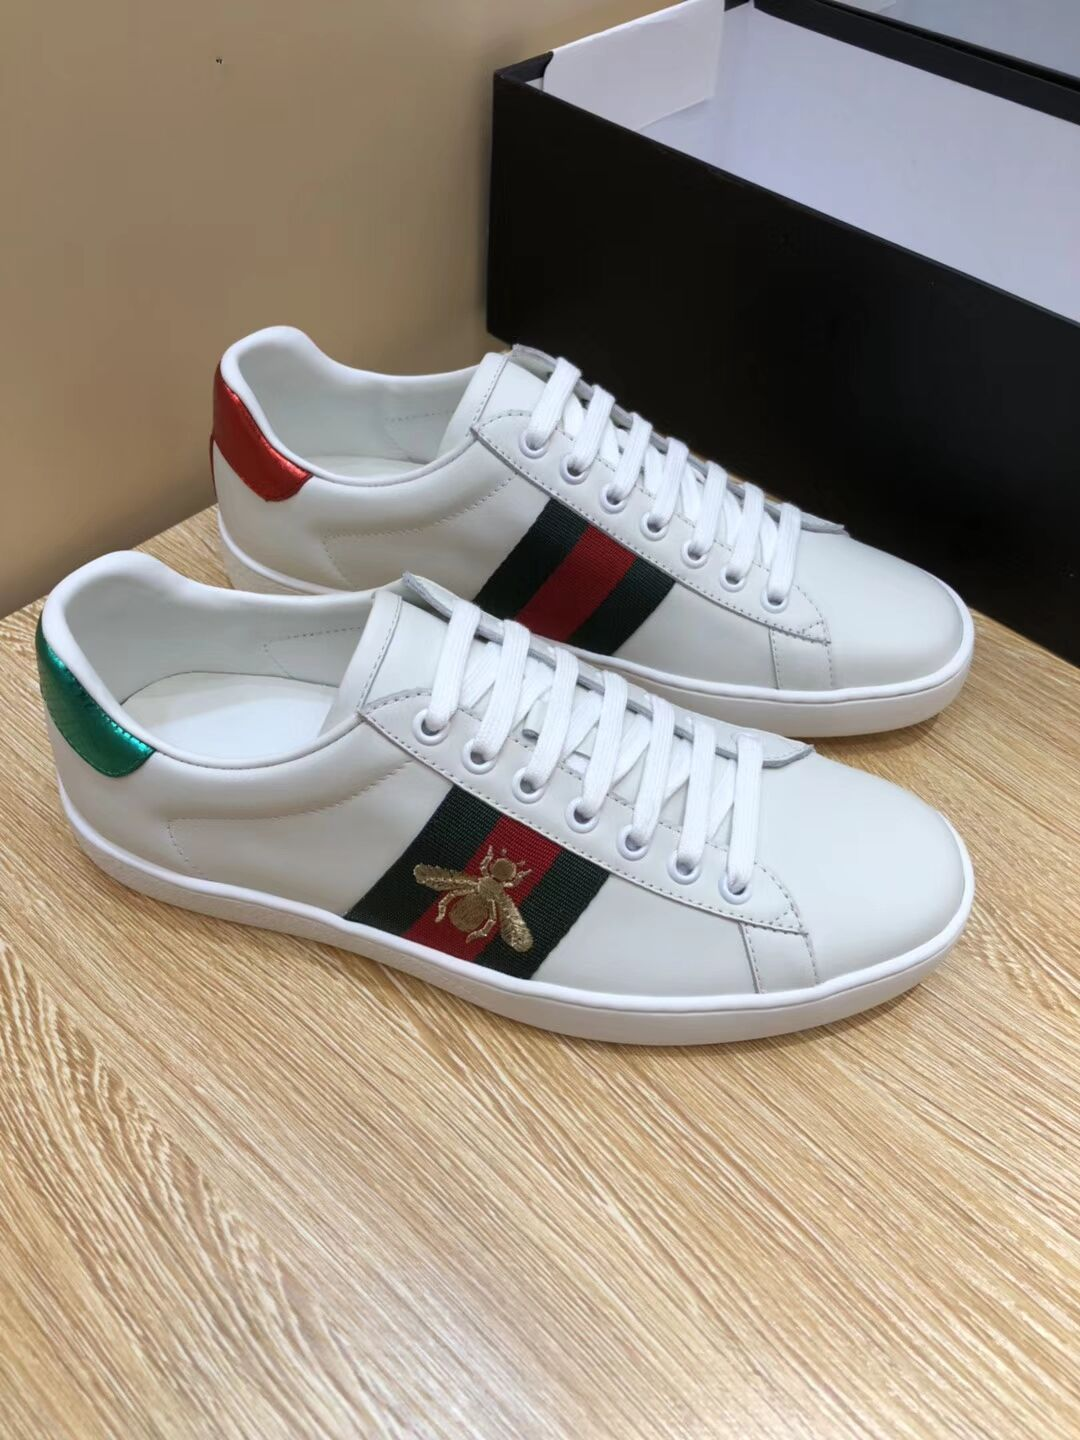 7fb019feafcb ... Mens Gucci Sneakers 1 1 original quality (come with A complete set of  packaging